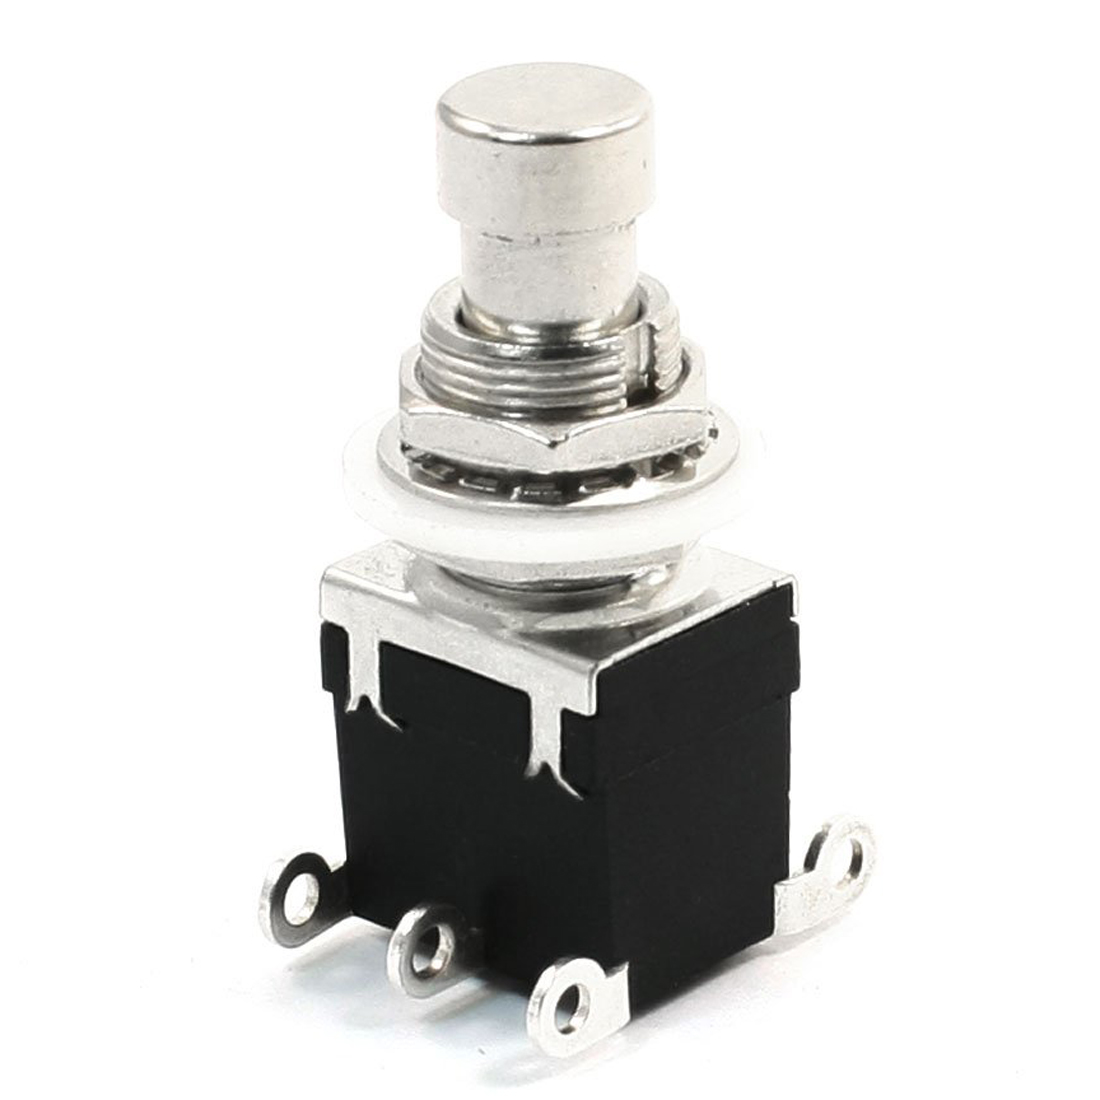 THGS-6Pins DPDT Momentary Stomp Foot Switch for Guitar AC 250V/2A 125V/4A 1pc spst momentary soft touch push button stomp foot pedal electric guitar switch m126 hot sale